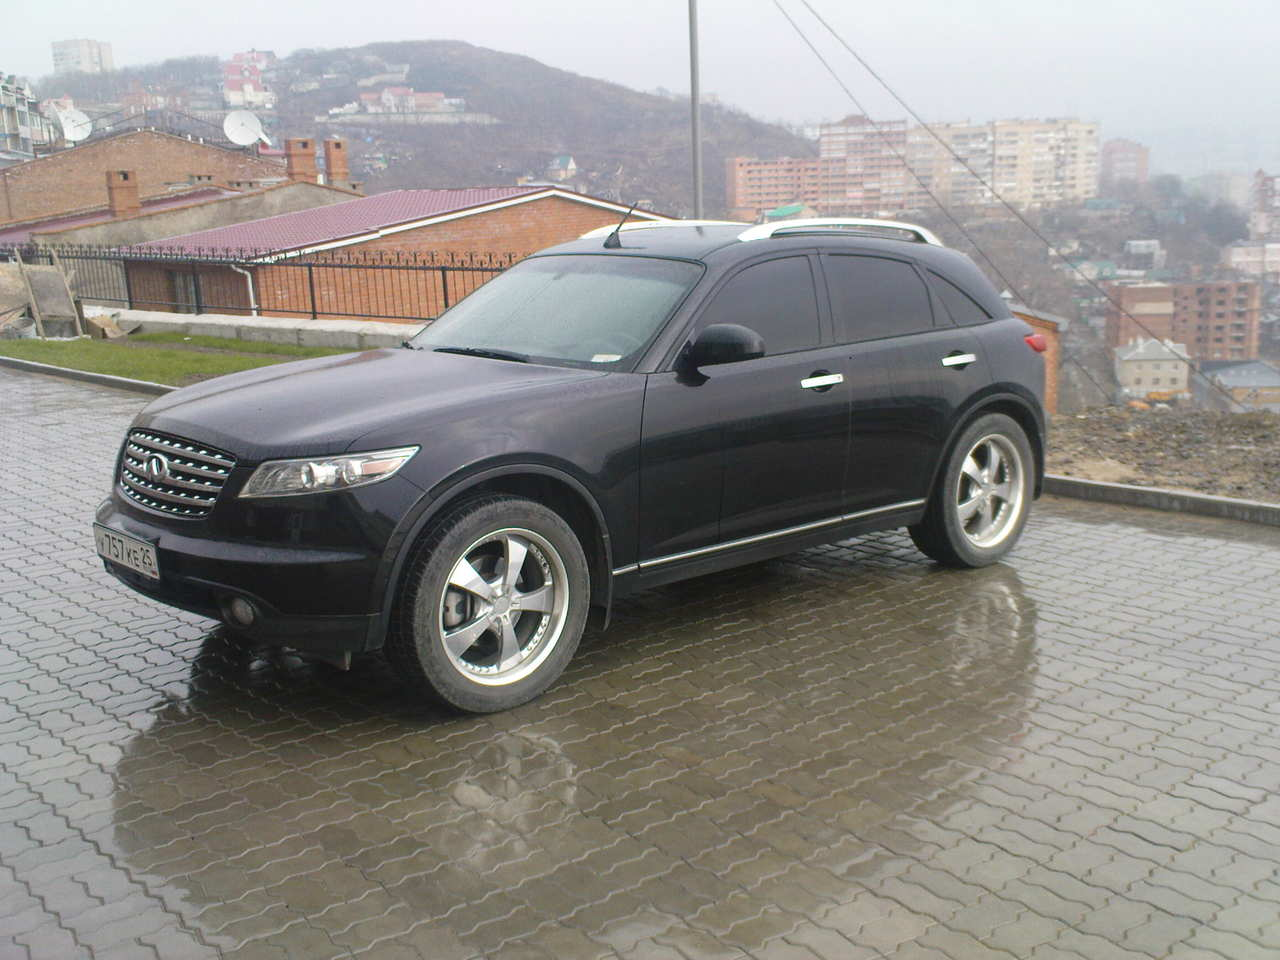 used 2003 infiniti fx45 photos 4500cc gasoline. Black Bedroom Furniture Sets. Home Design Ideas